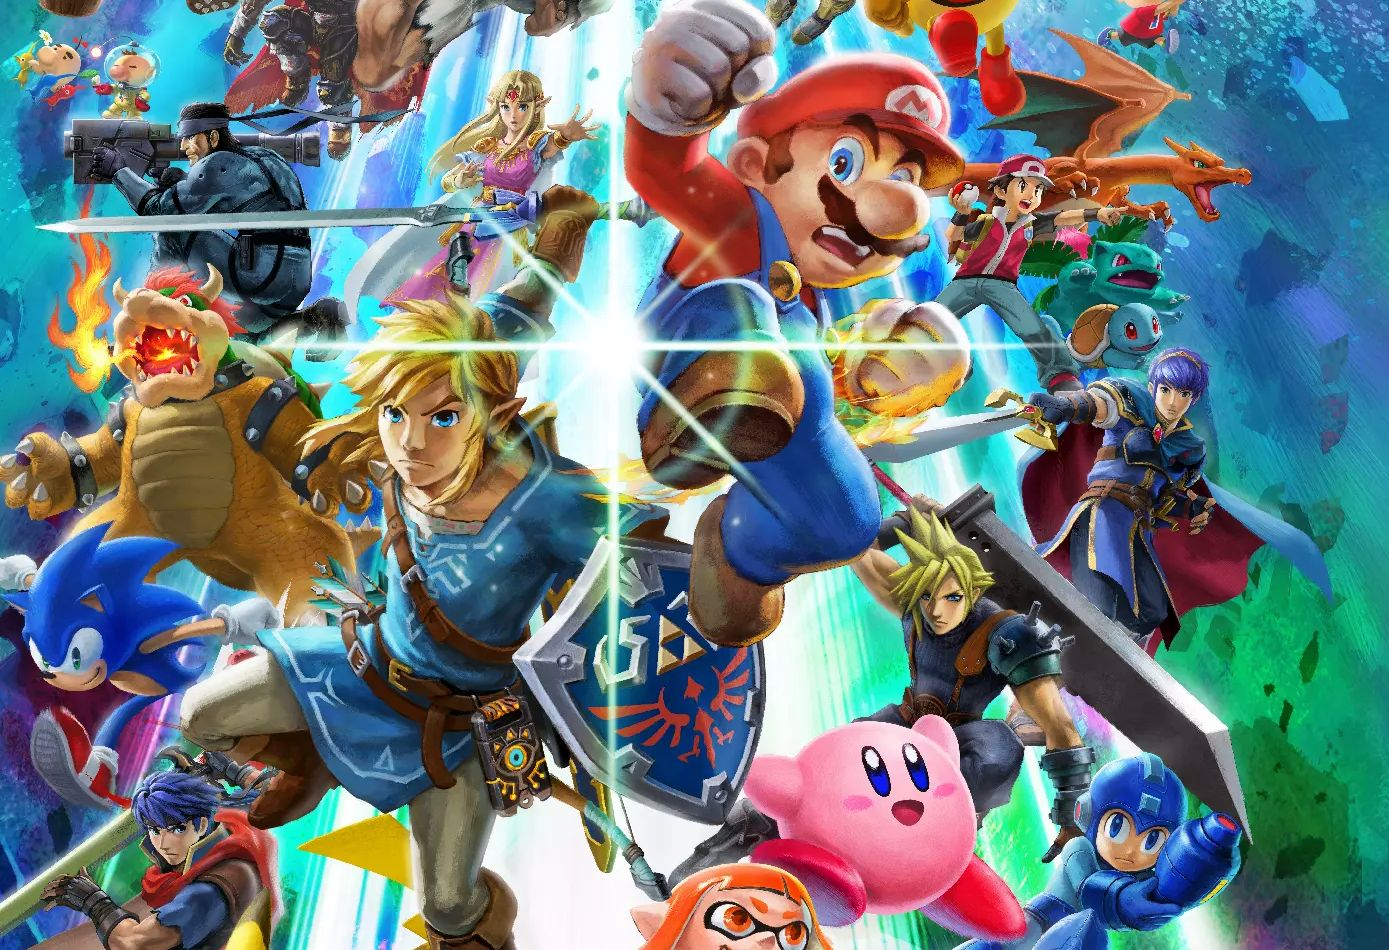 Podcast: Let's Talk About Super Smash Bros. Ultimate